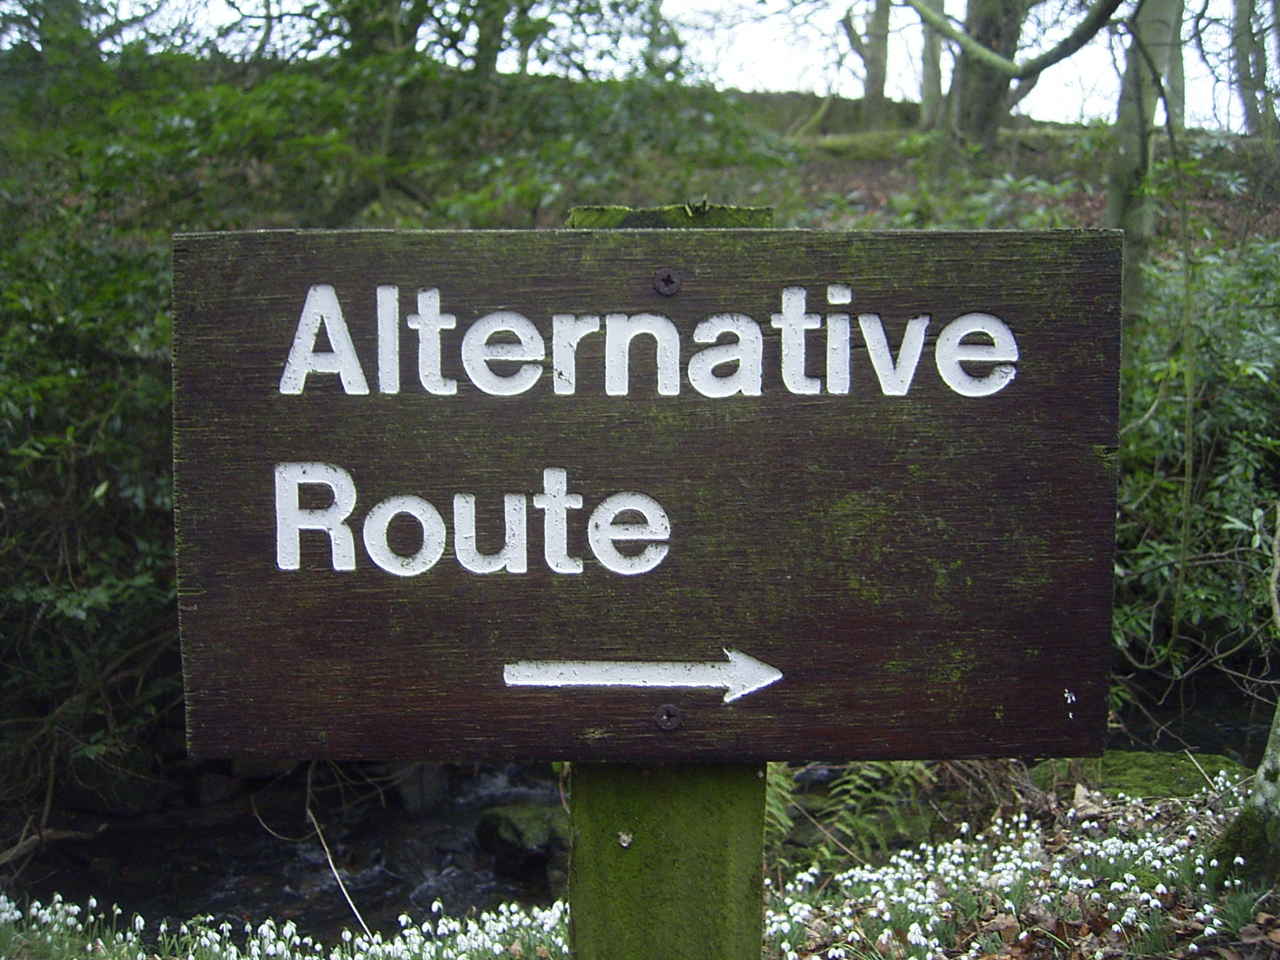 alternative route: duncan c CC BY-NC 2.0